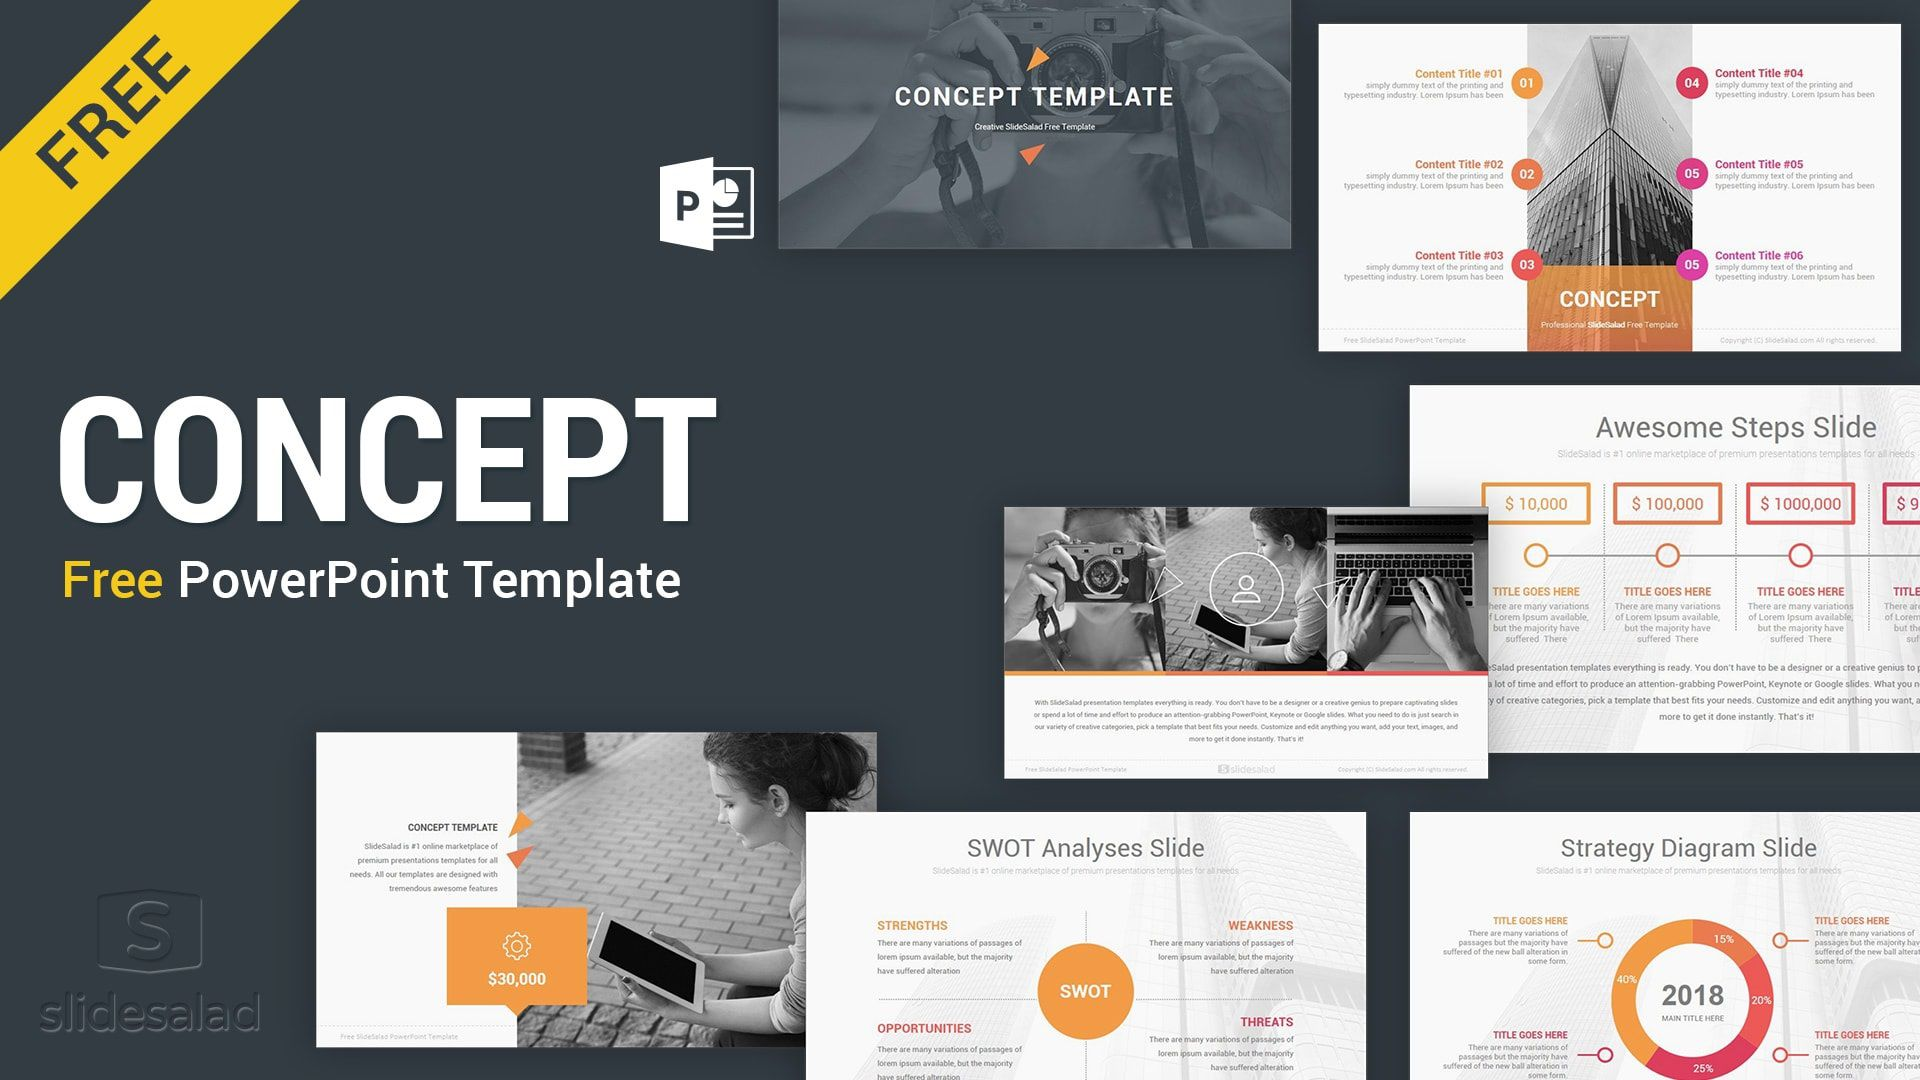 004 Singular Free Downloadable Powerpoint Template Design  Templates Download Animated Background ThemeFull